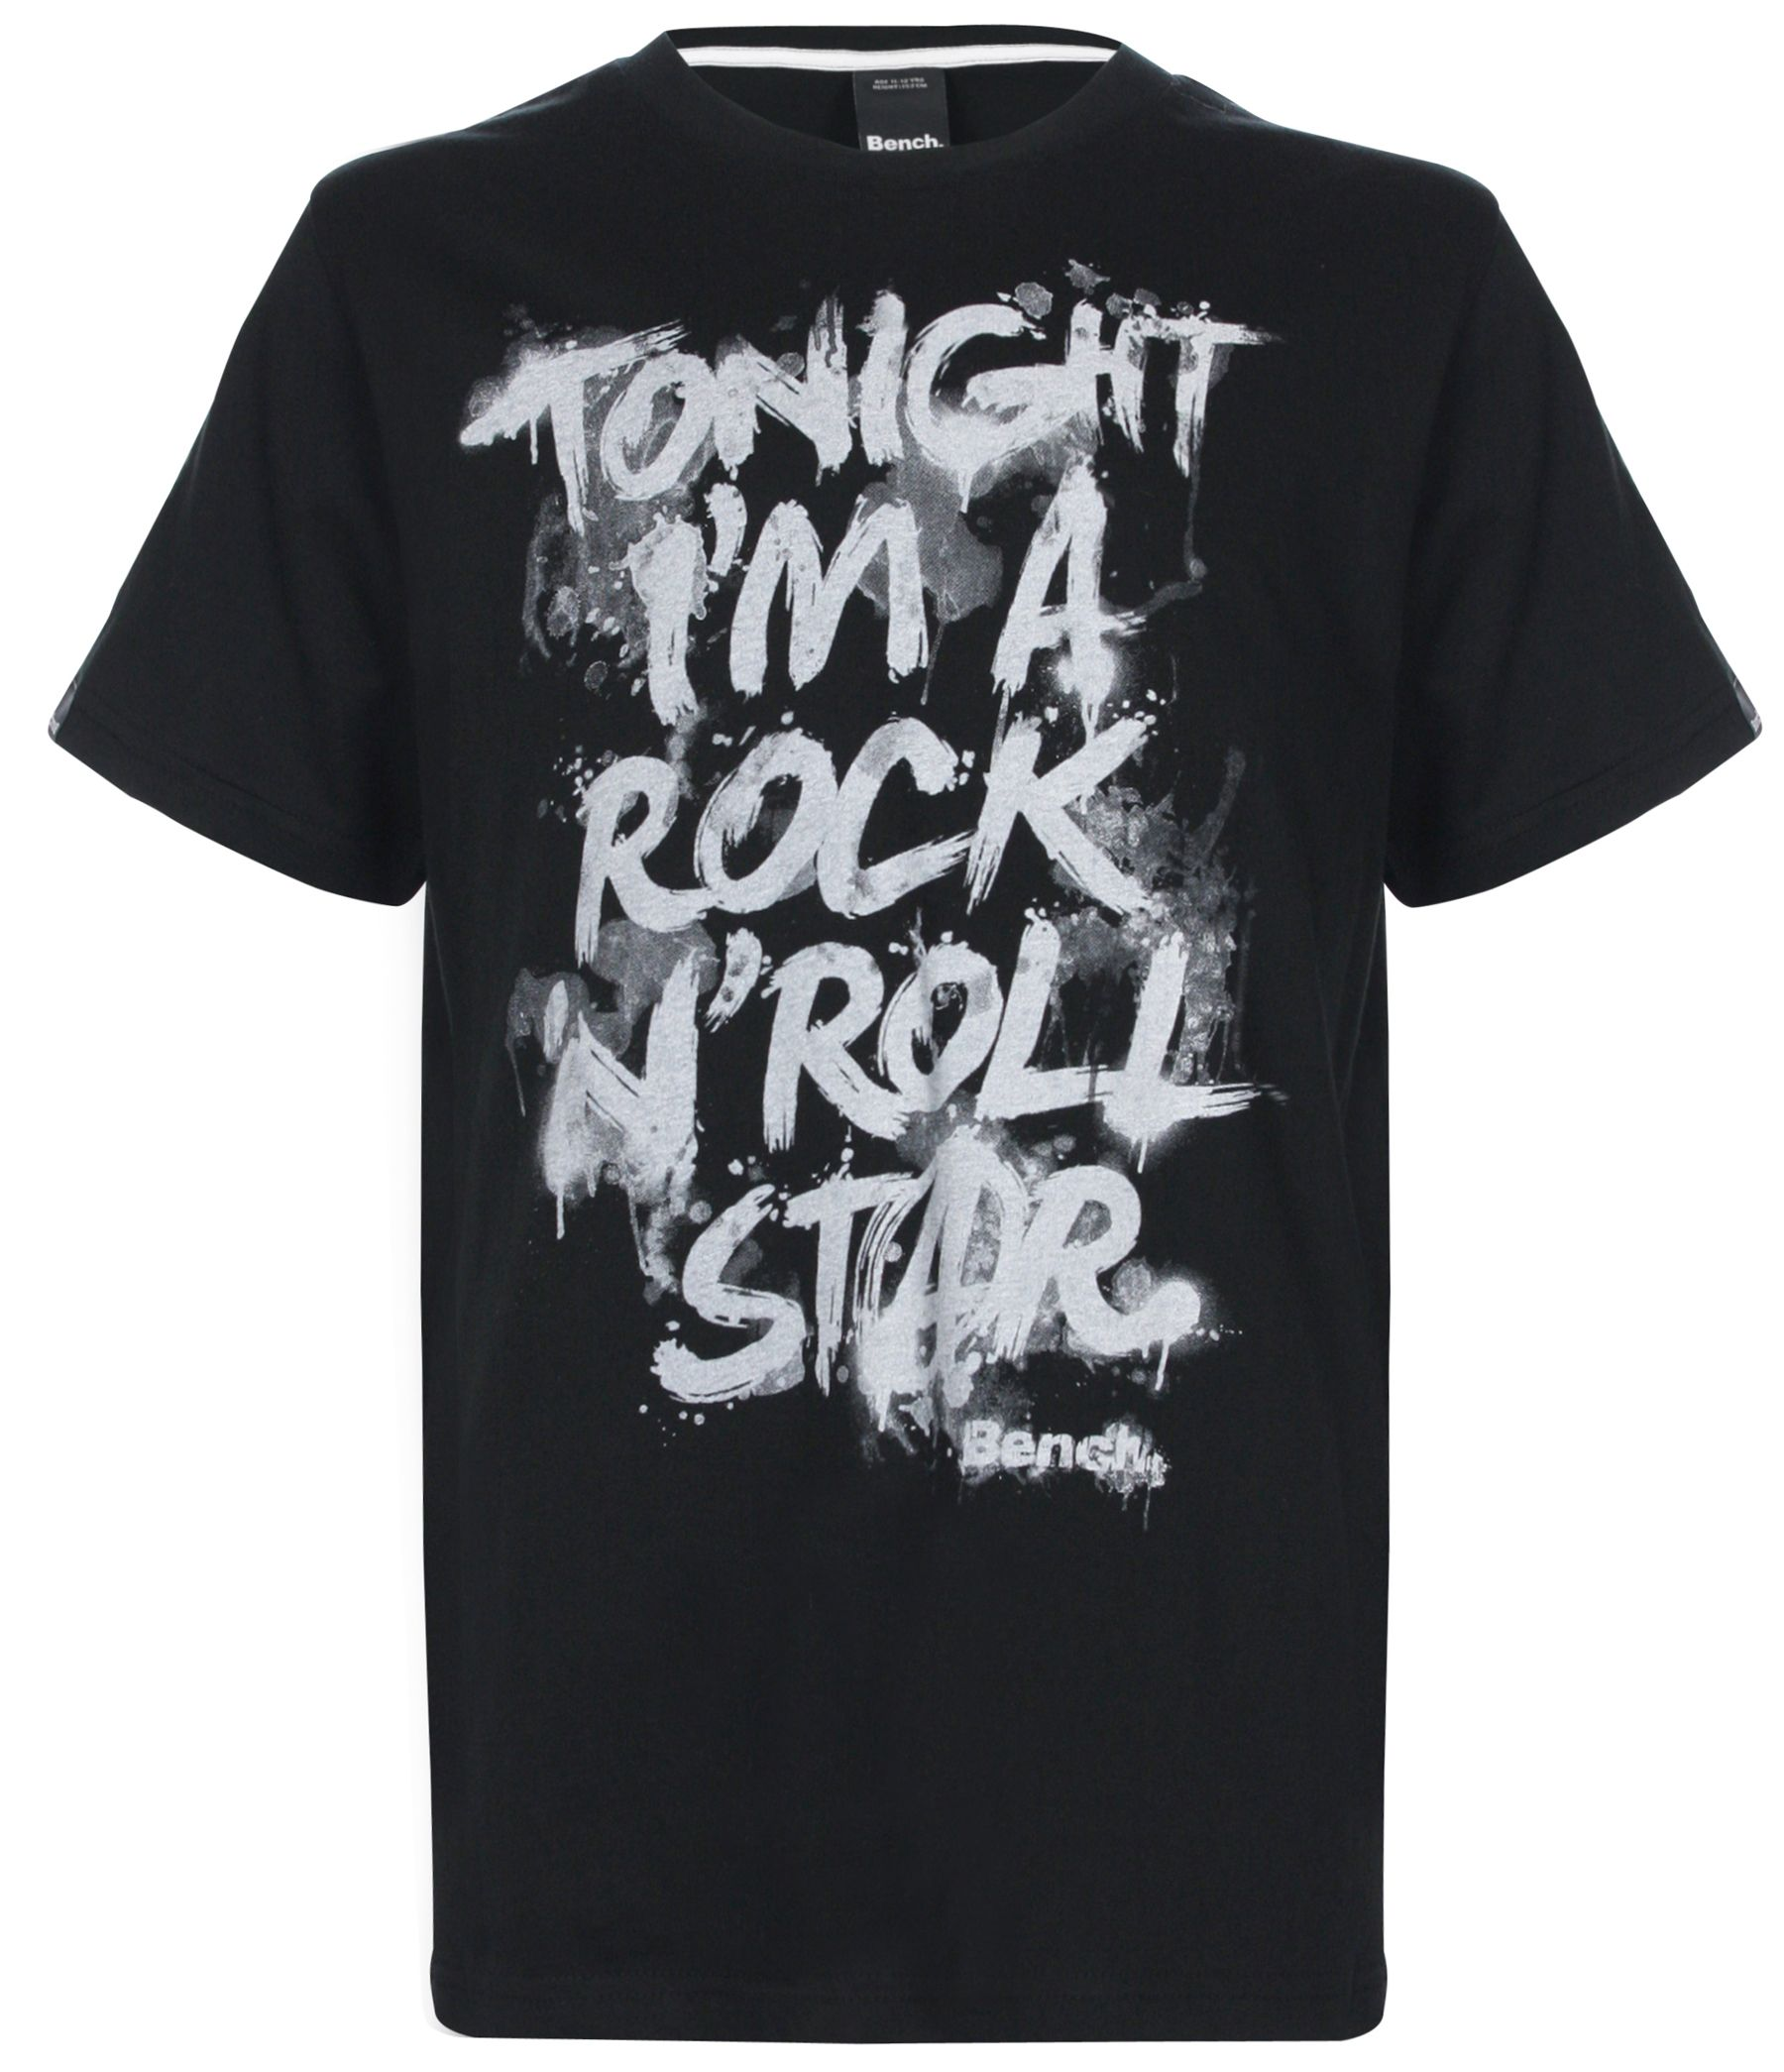 Childrens Bench Child rockstar t-shirt,